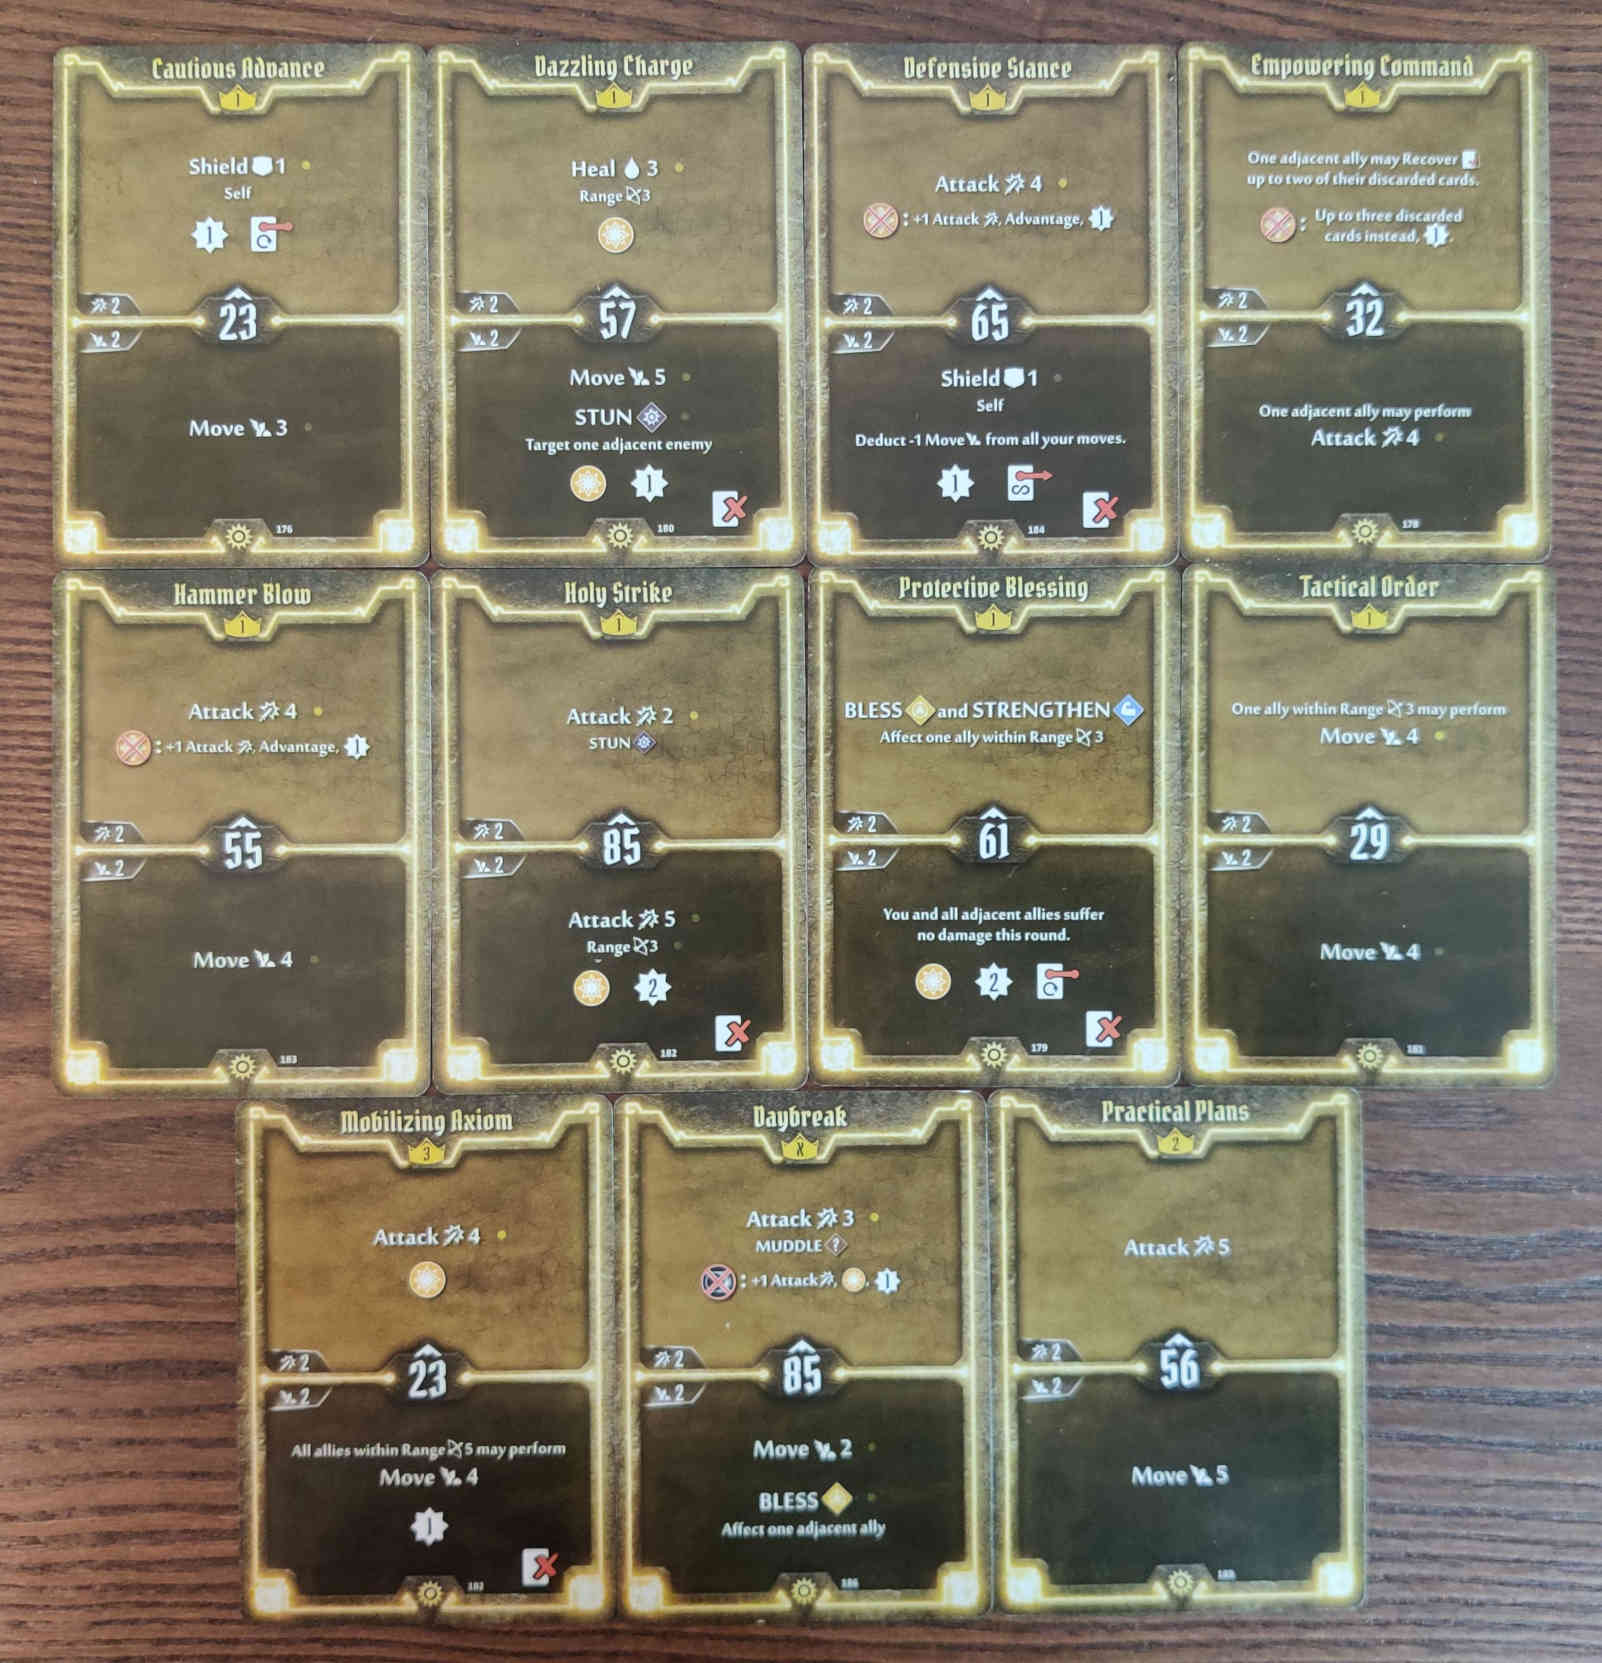 Gloomhaven Sunkeeper Damage Build Level 3 cards